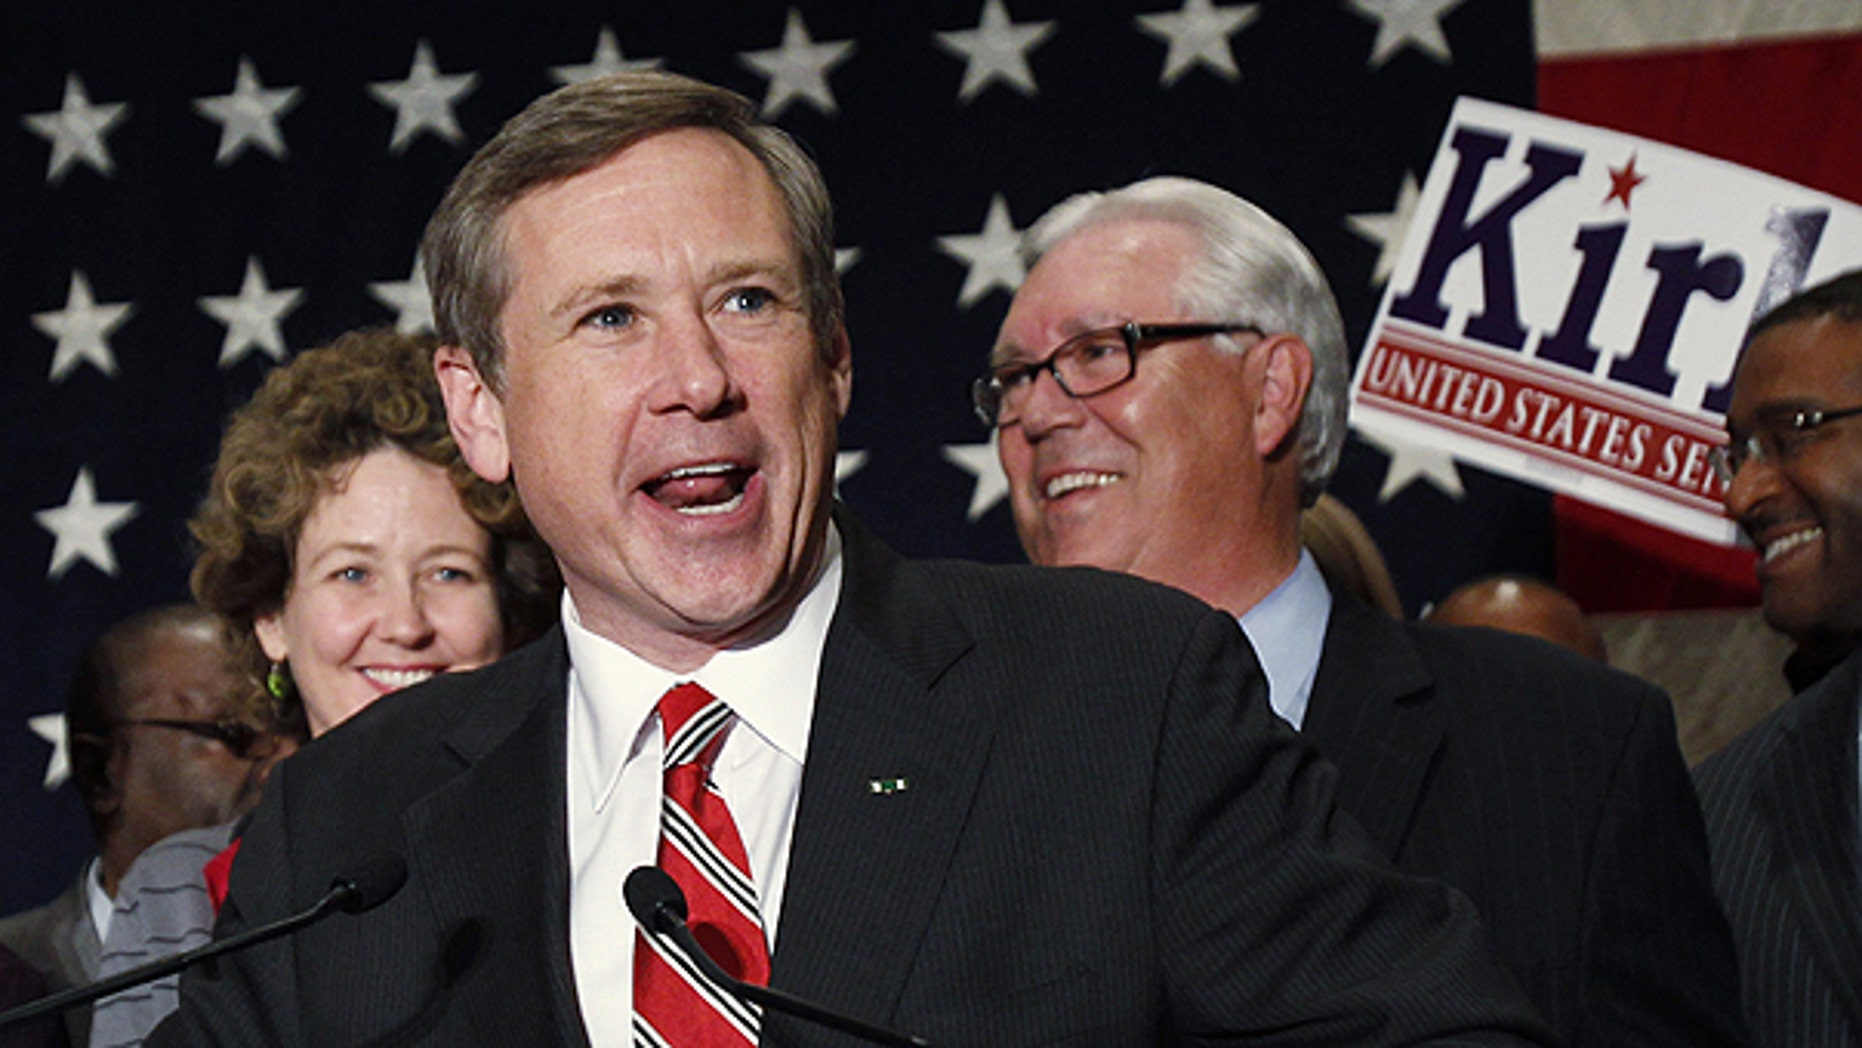 Nov. 2: Illinois Sen.-elect Mark Kirk, R-Ill., celebrates as he speaks to his supporters after defeating Democratic nominee Alexi Giannoulias in Wheeling, Ill.